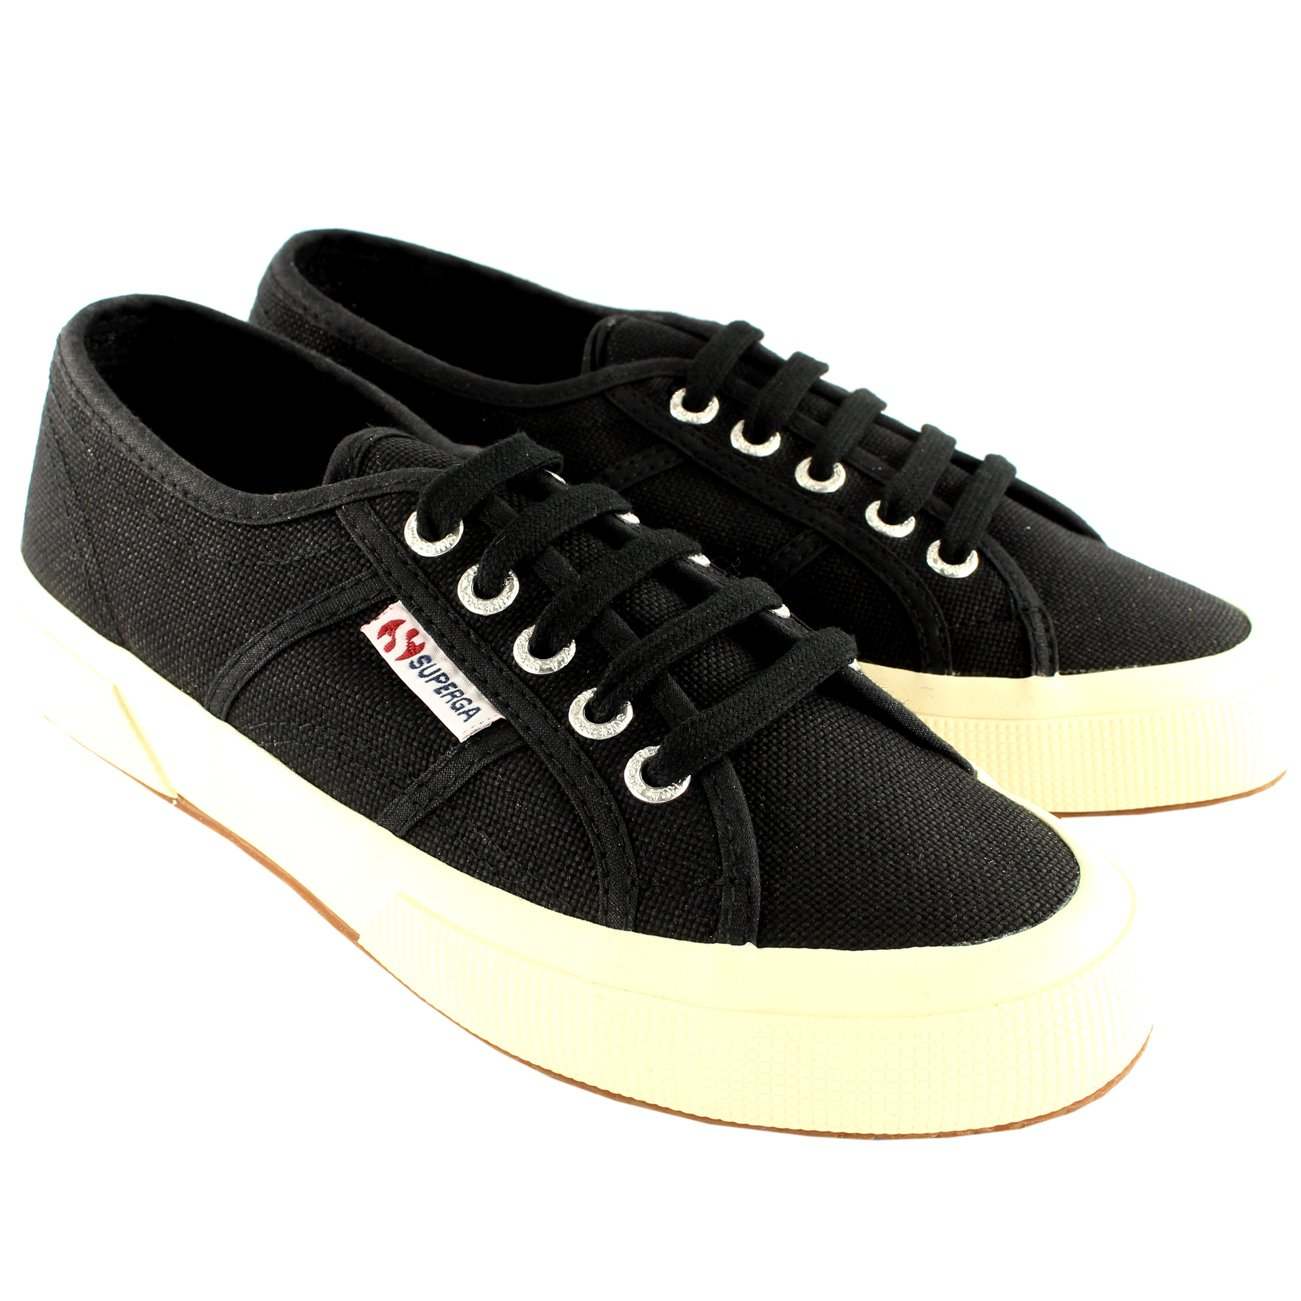 Superga Womens 2750 Cotu Canvas Trainers B00JPJE1QQ 5.5 B(M) US|Black/White